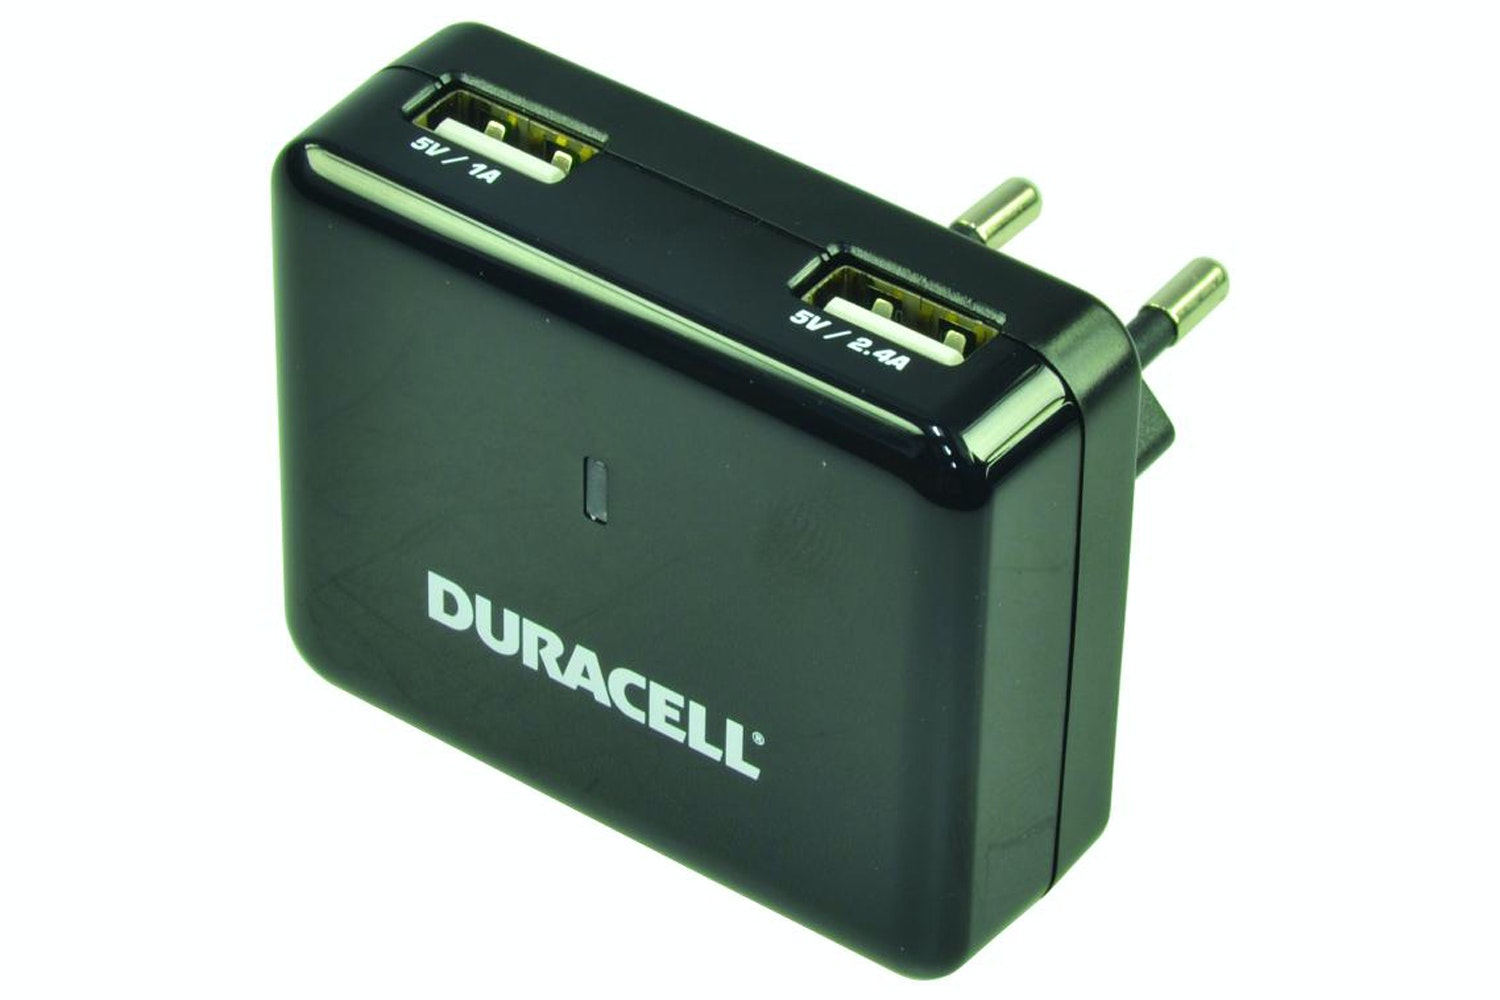 Duracell Duracell Dual USB Wall Charger 2.4A &1A